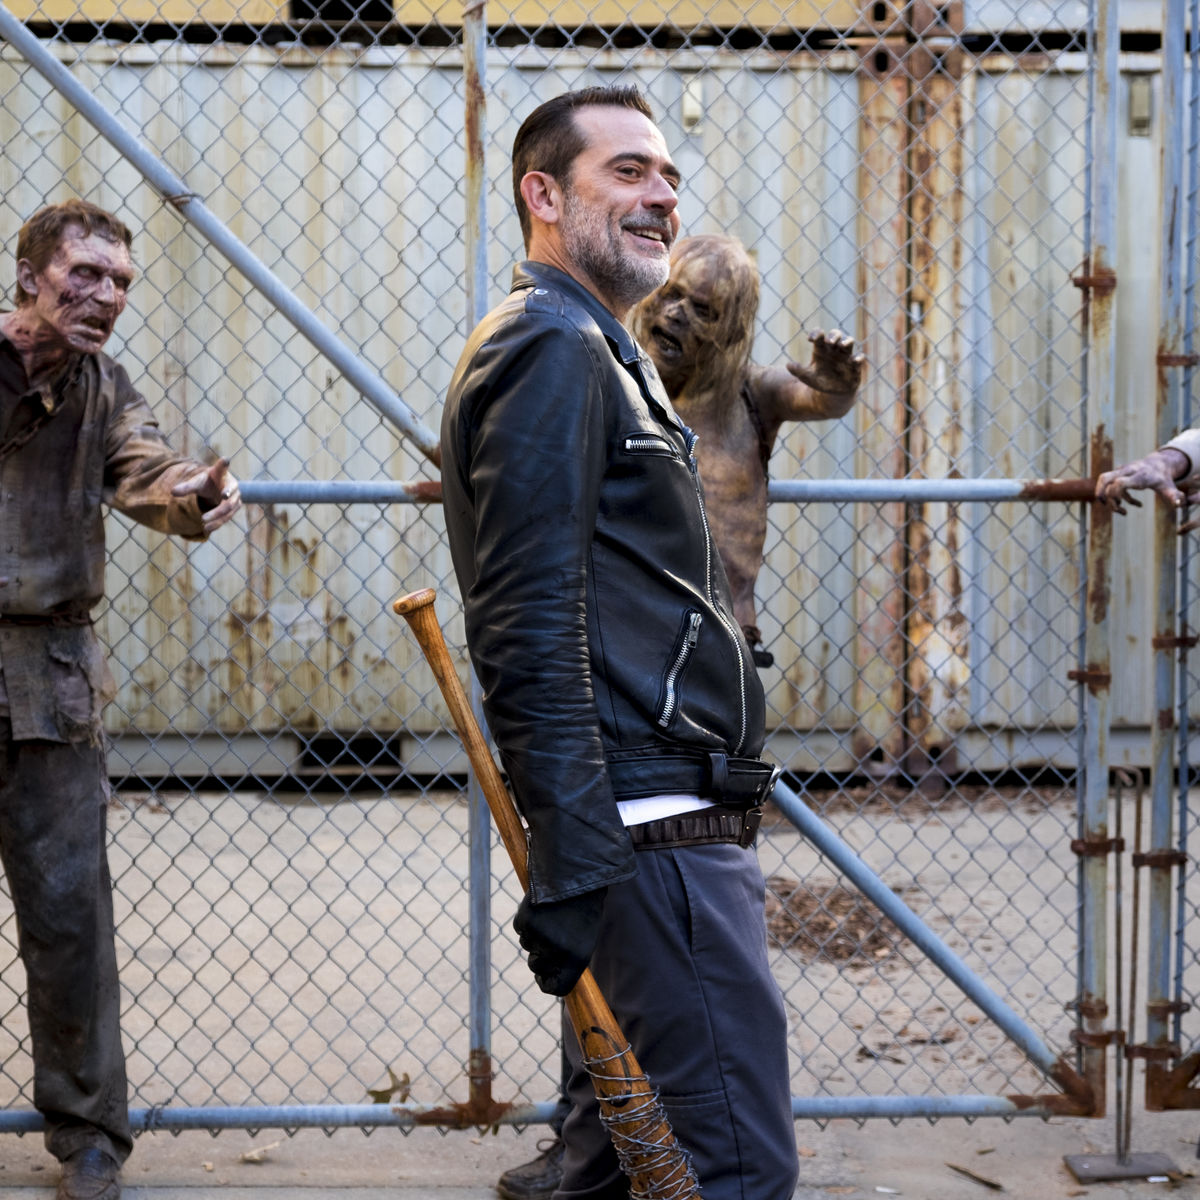 The Walking Dead episode 811 - Negan walking in front of chained zombies